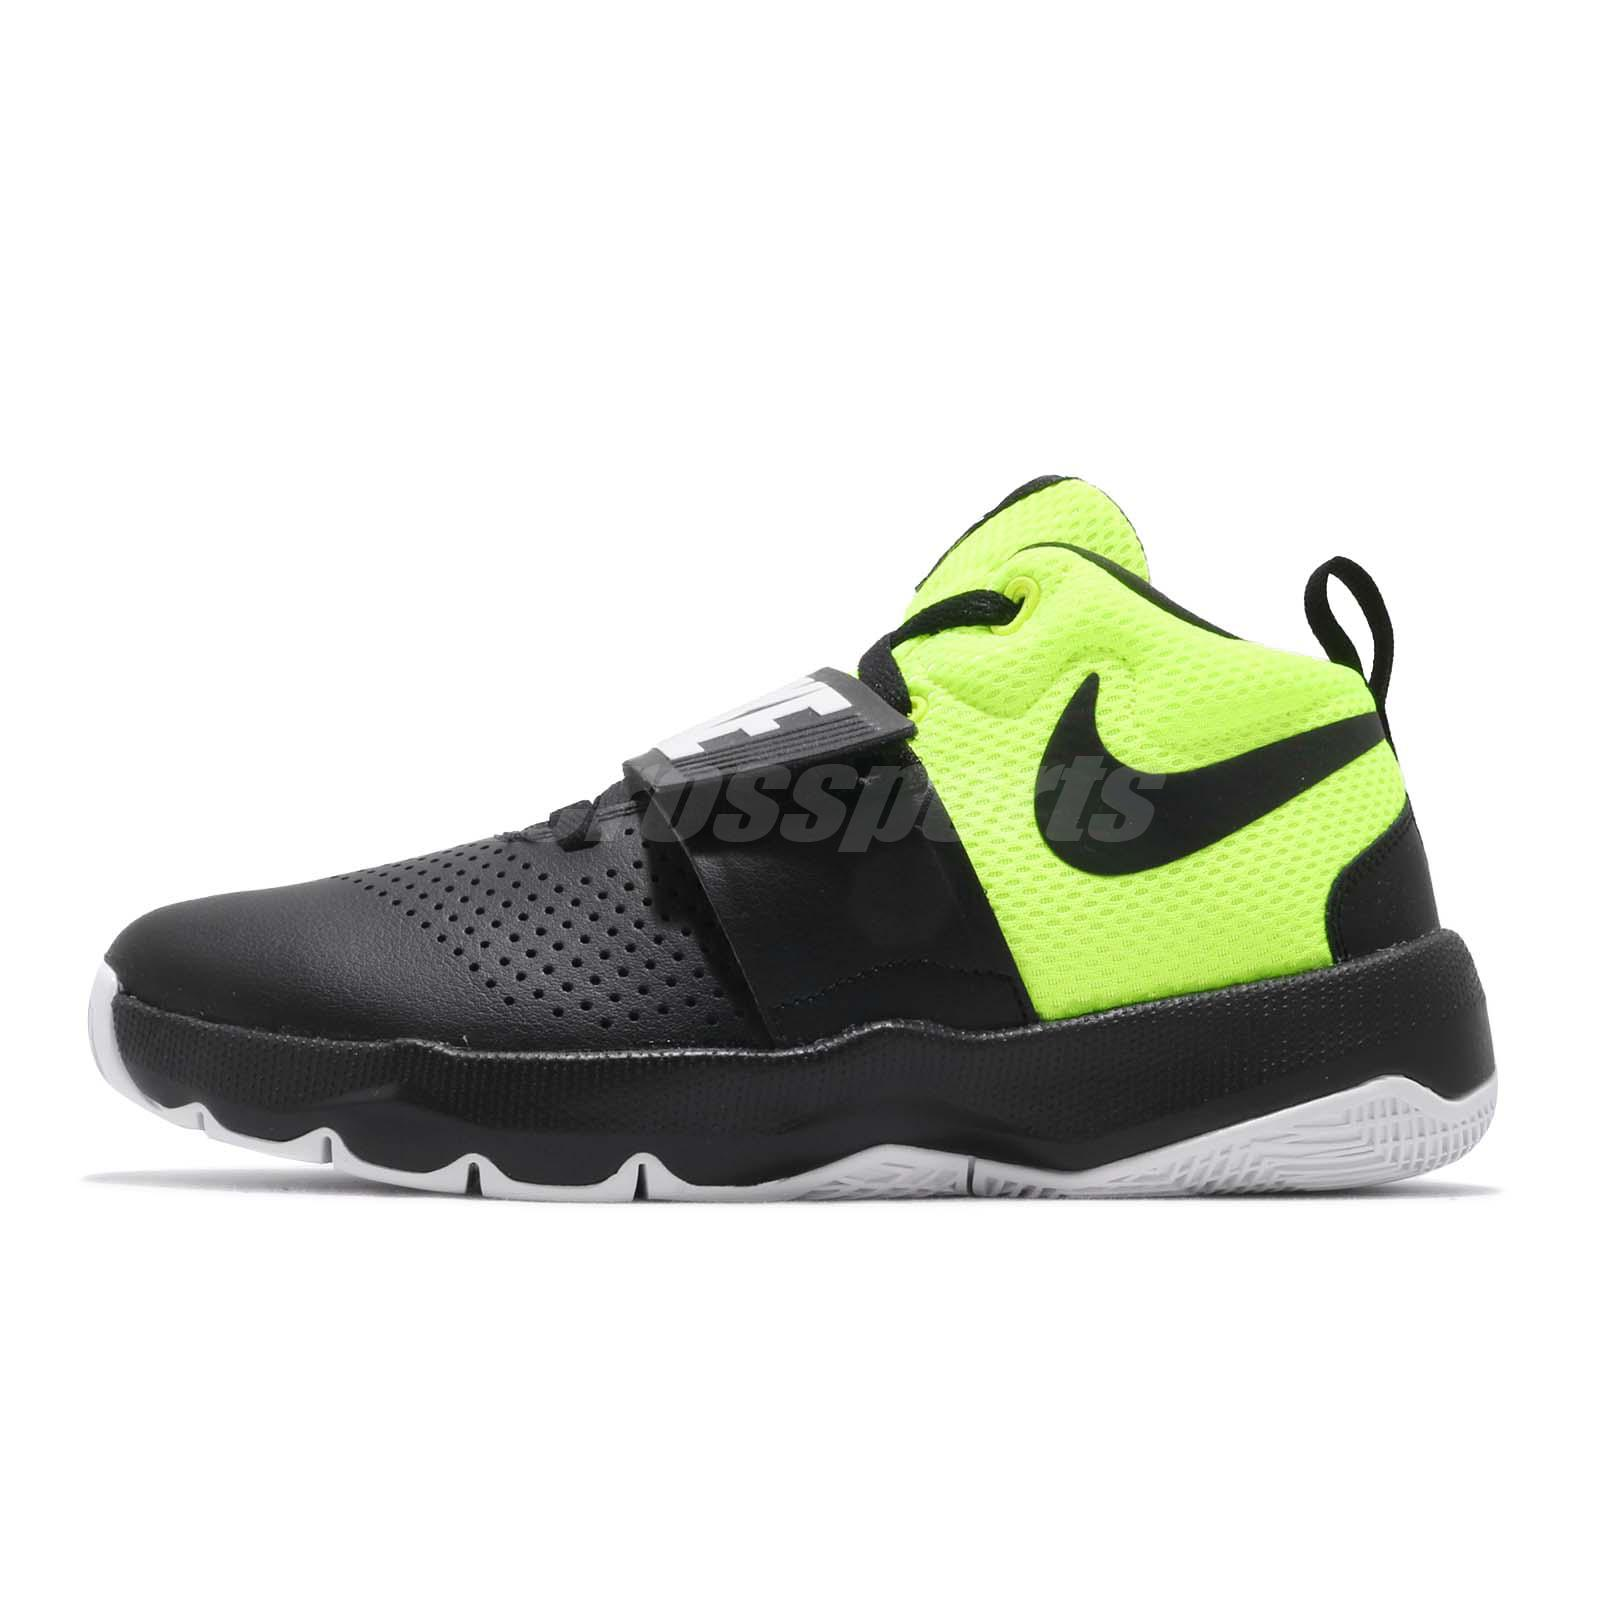 premium selection 926c5 f3514 Nike Team Hustle D 8 GS Black Volt Kid Youth Women Basketball Shoes  881941-014